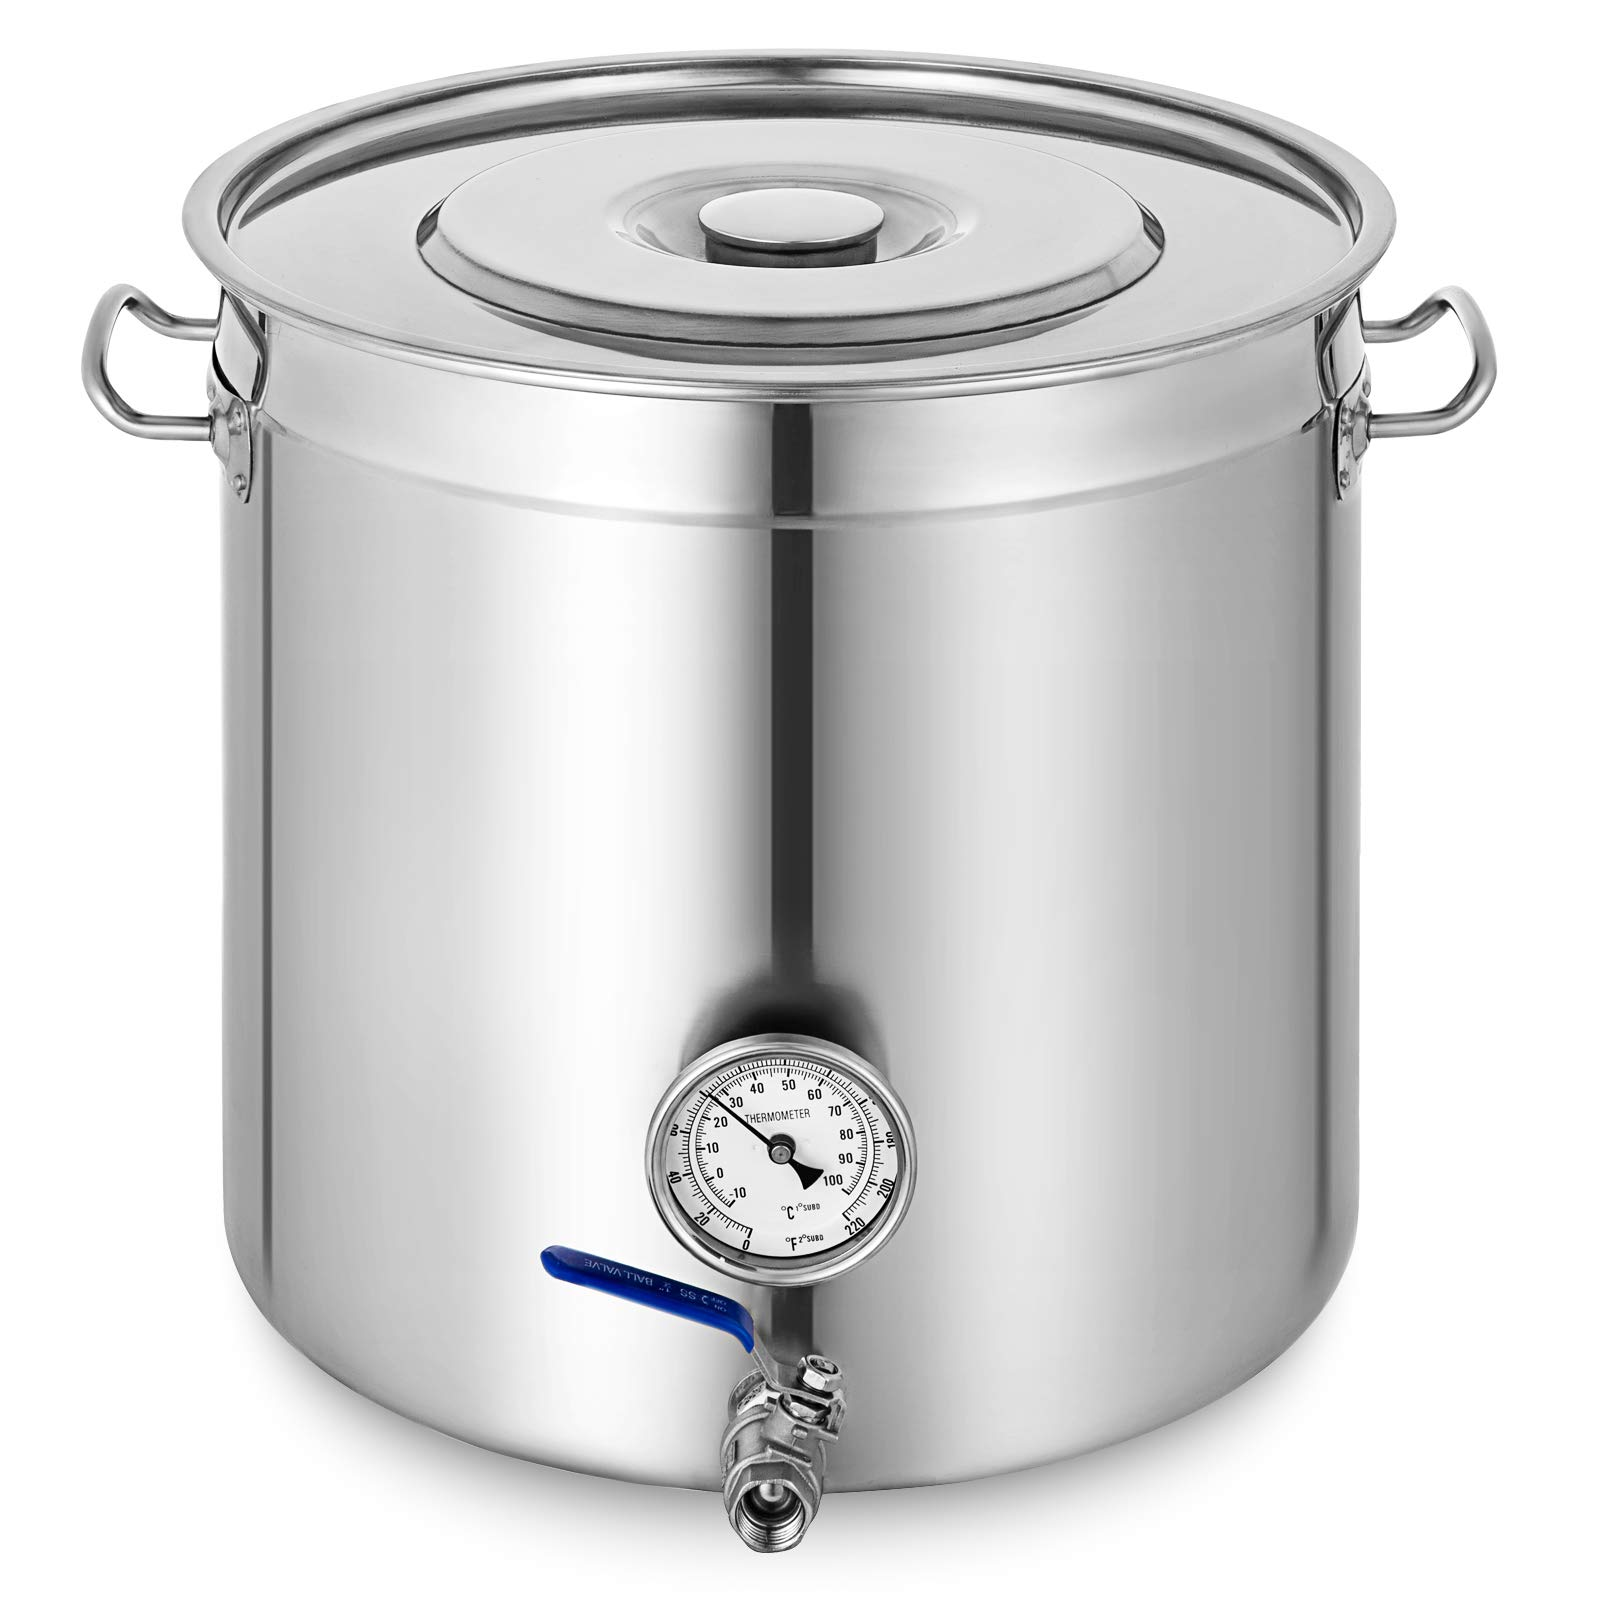 Mophorn Kettle Stockpot Stainless Steel 25Gal with Lid & Thermometer for Home Brew and Stock Pot Cookware, 100 Quart With